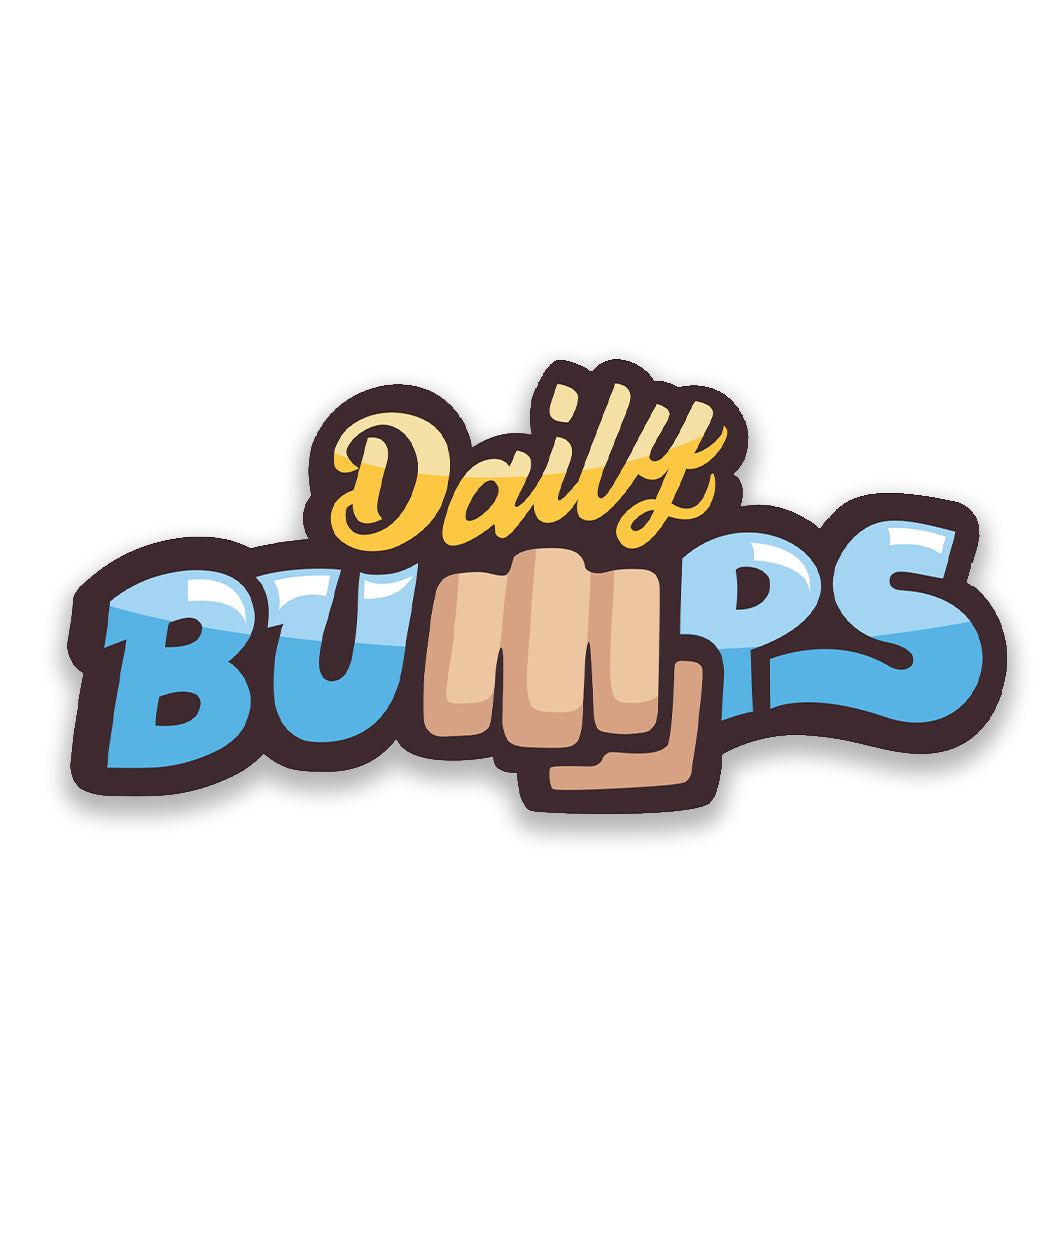 Daily Bumps Logo Decal